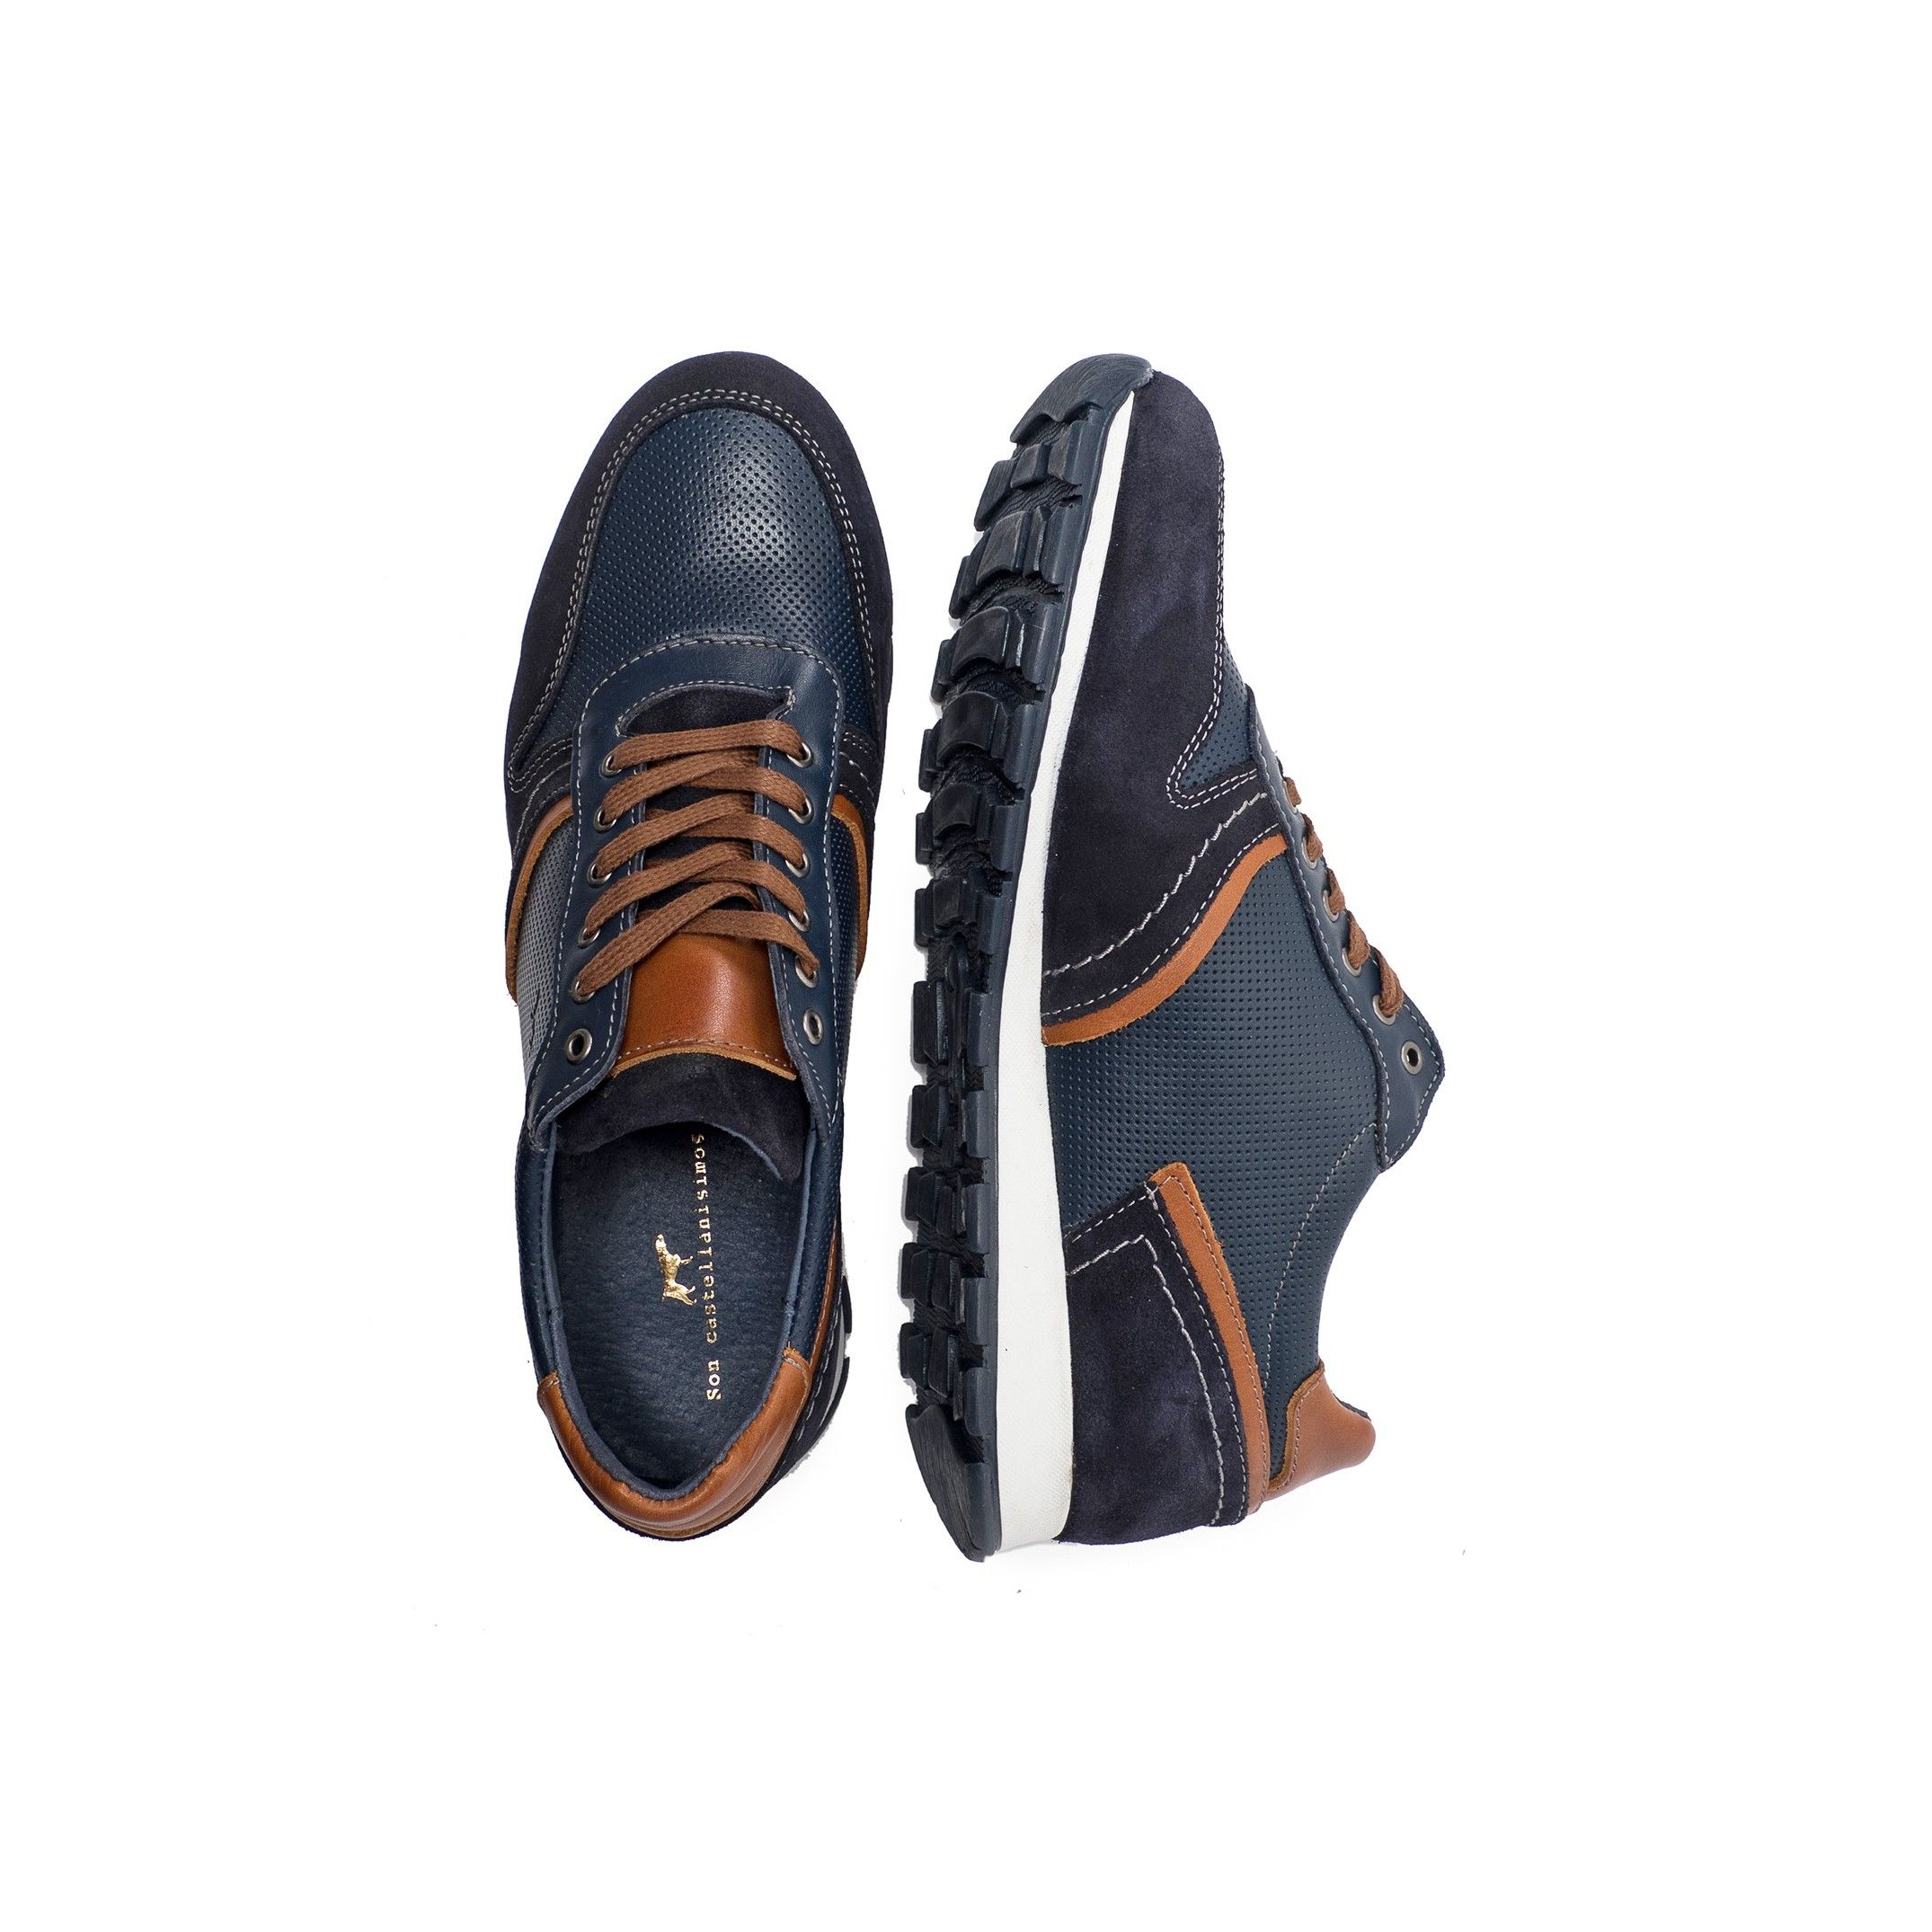 Leather Sneakers for Men